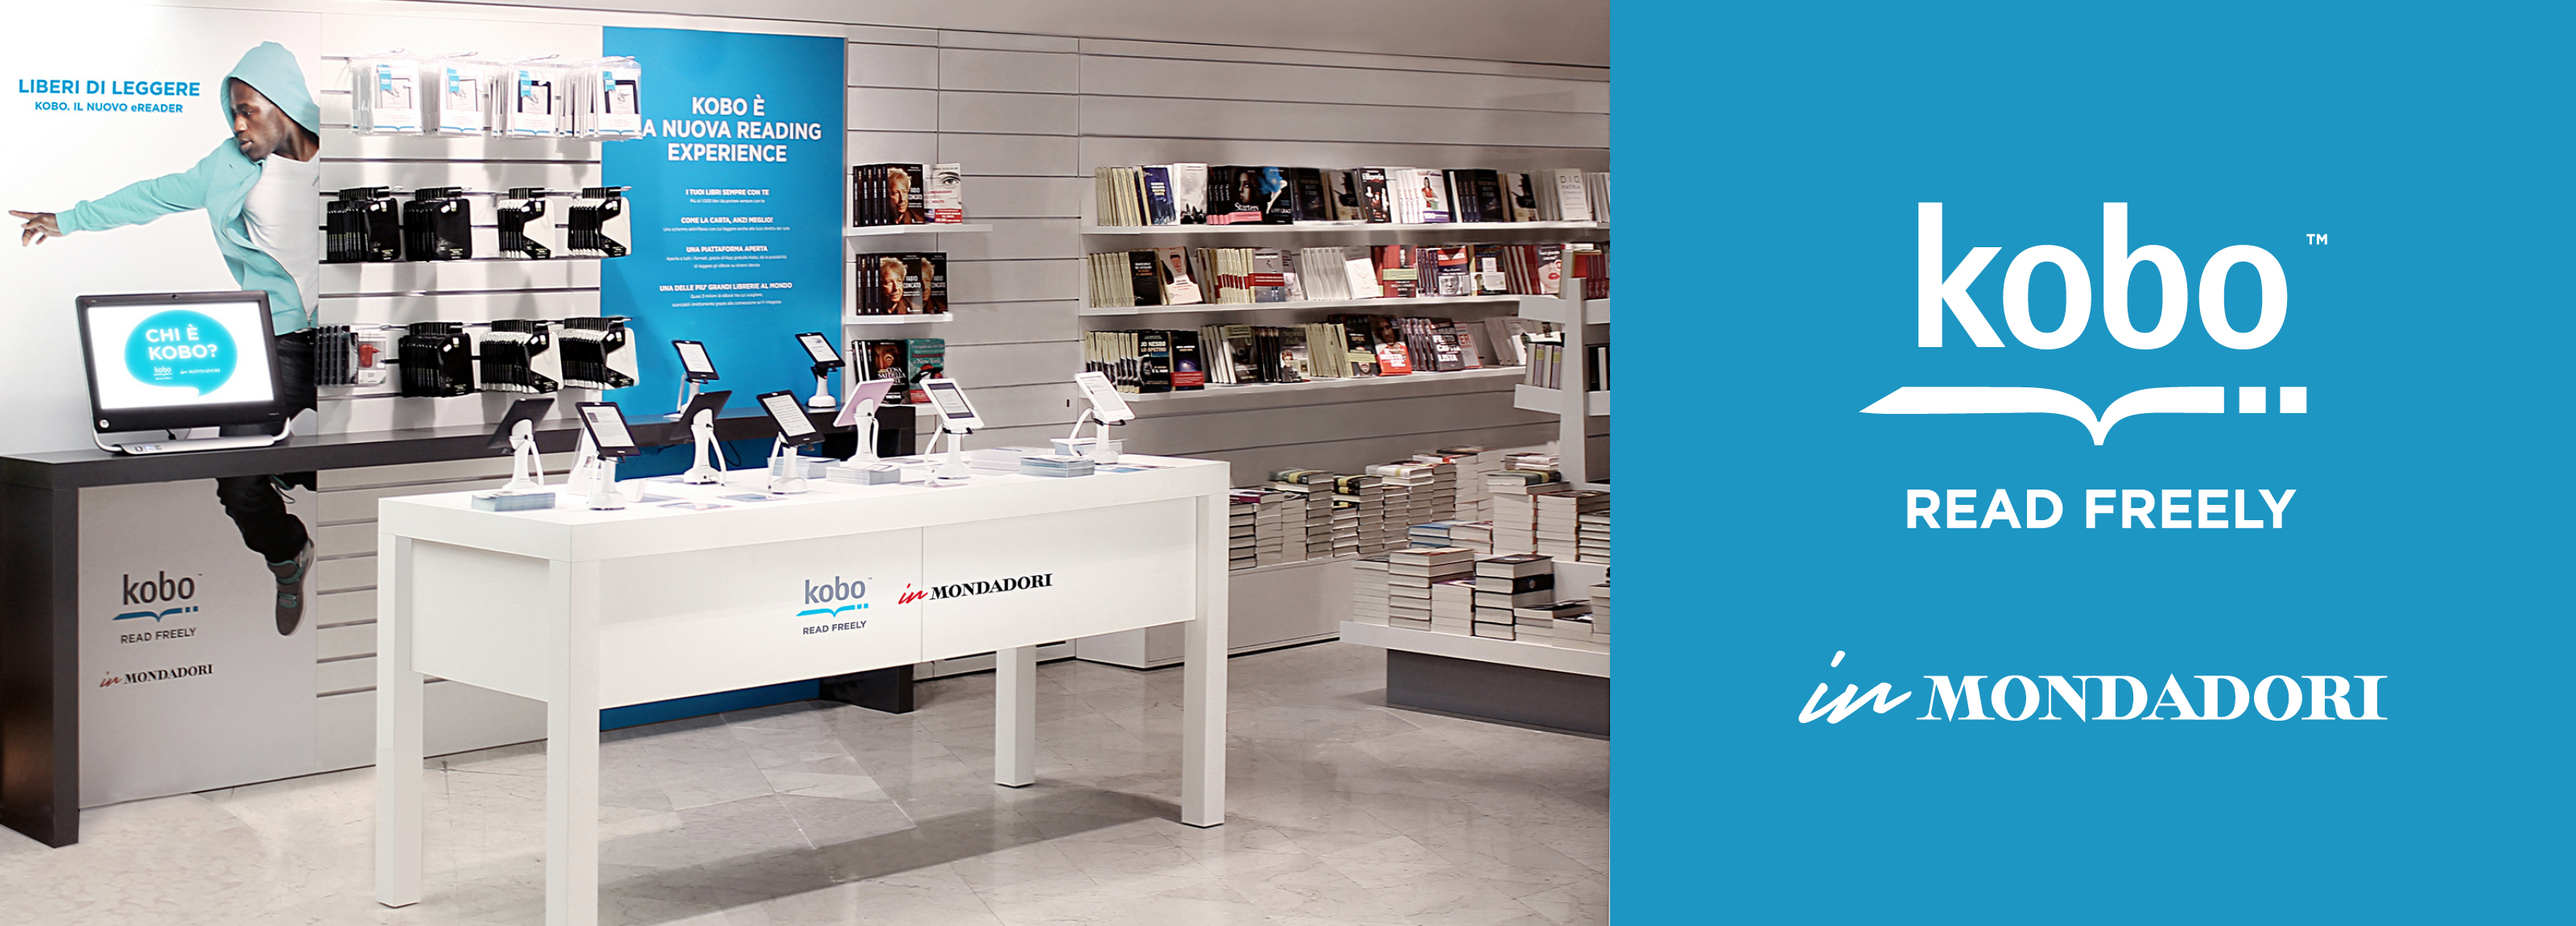 Retail and exhibition design by Hangar Design Group for Kobo e-reader.